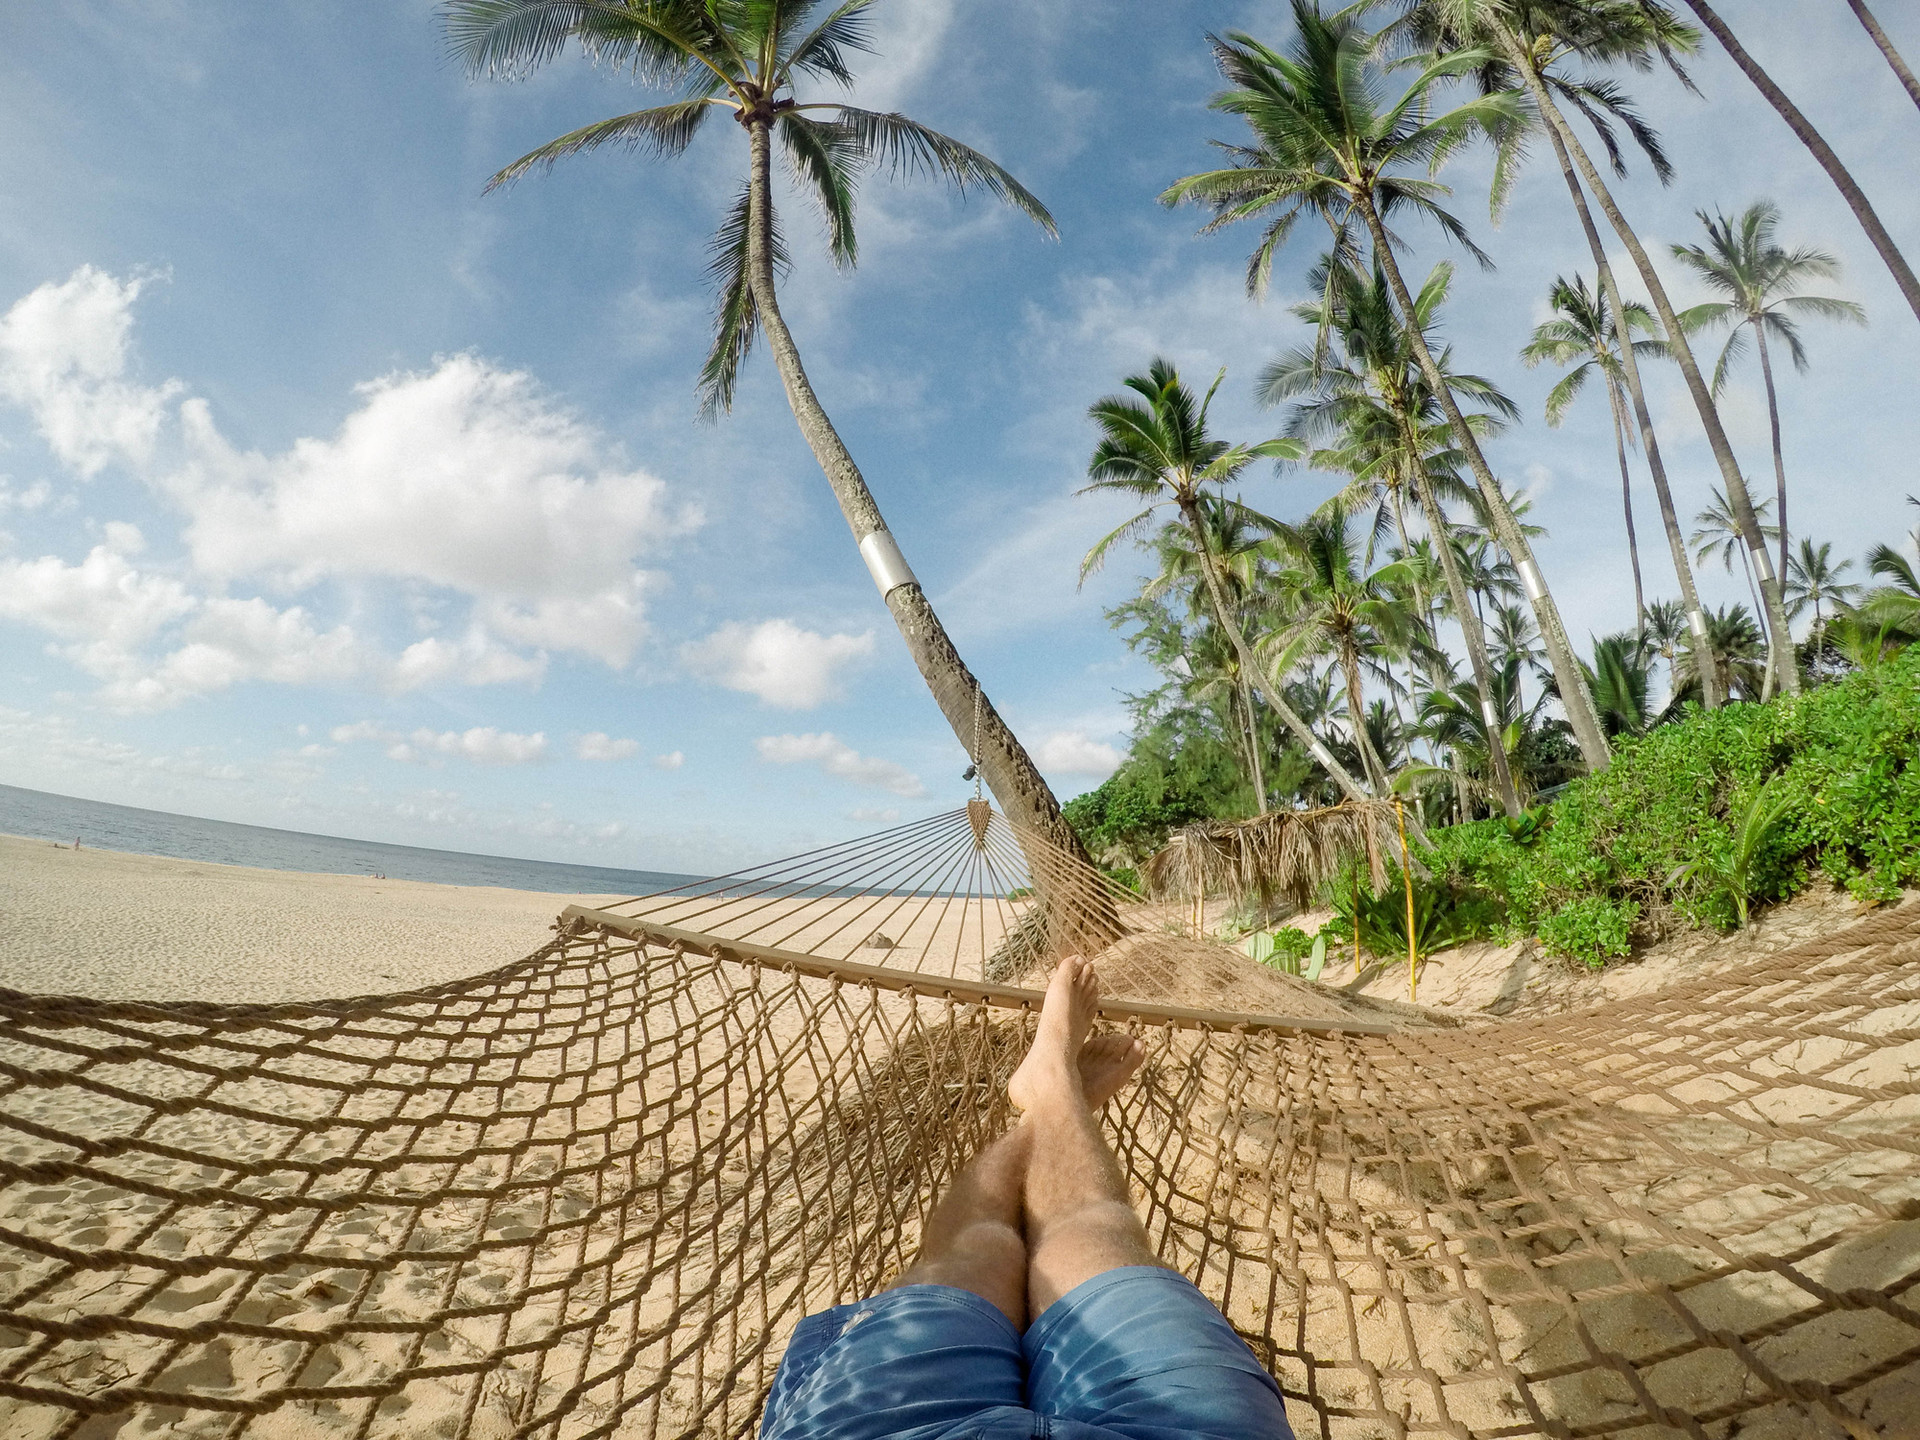 Travel and Relaxation